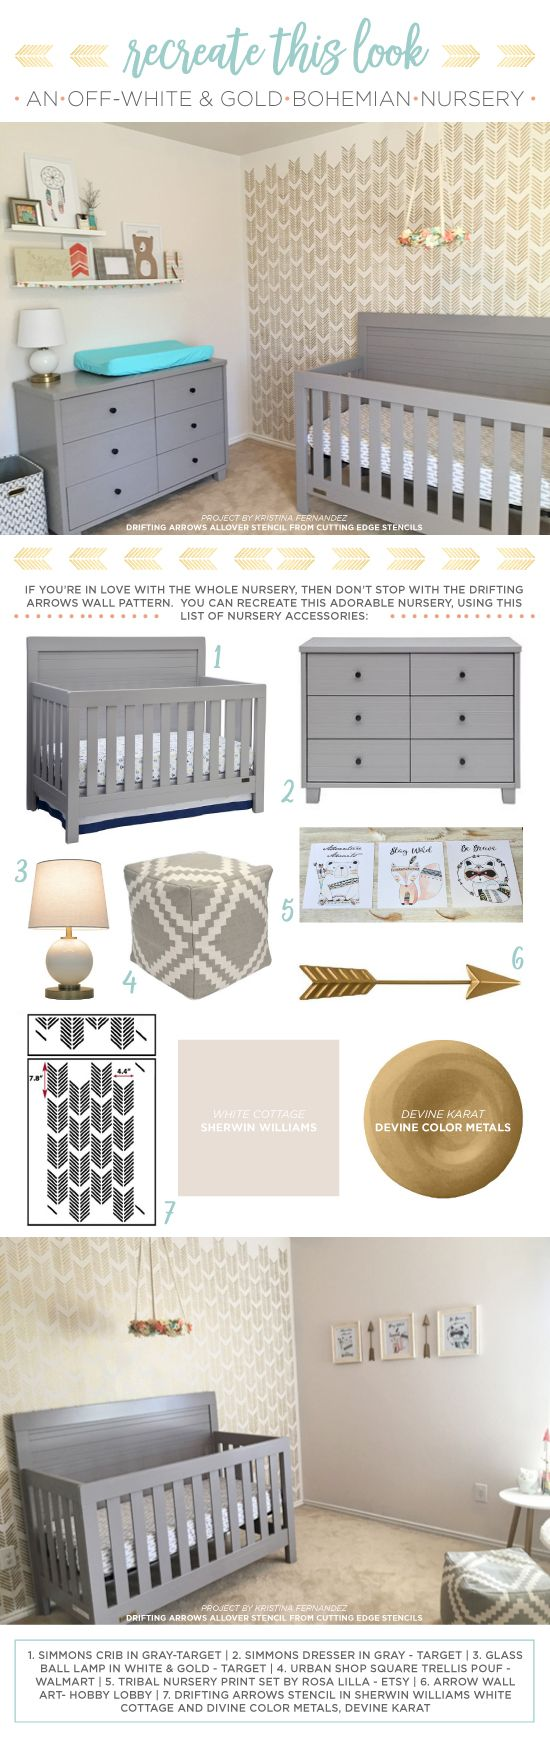 330 best girls room stencils decor images on pinterest cutting edge stencils shares a diy stenciled girls nursery accent wall using the drifting arrows stencil amipublicfo Image collections